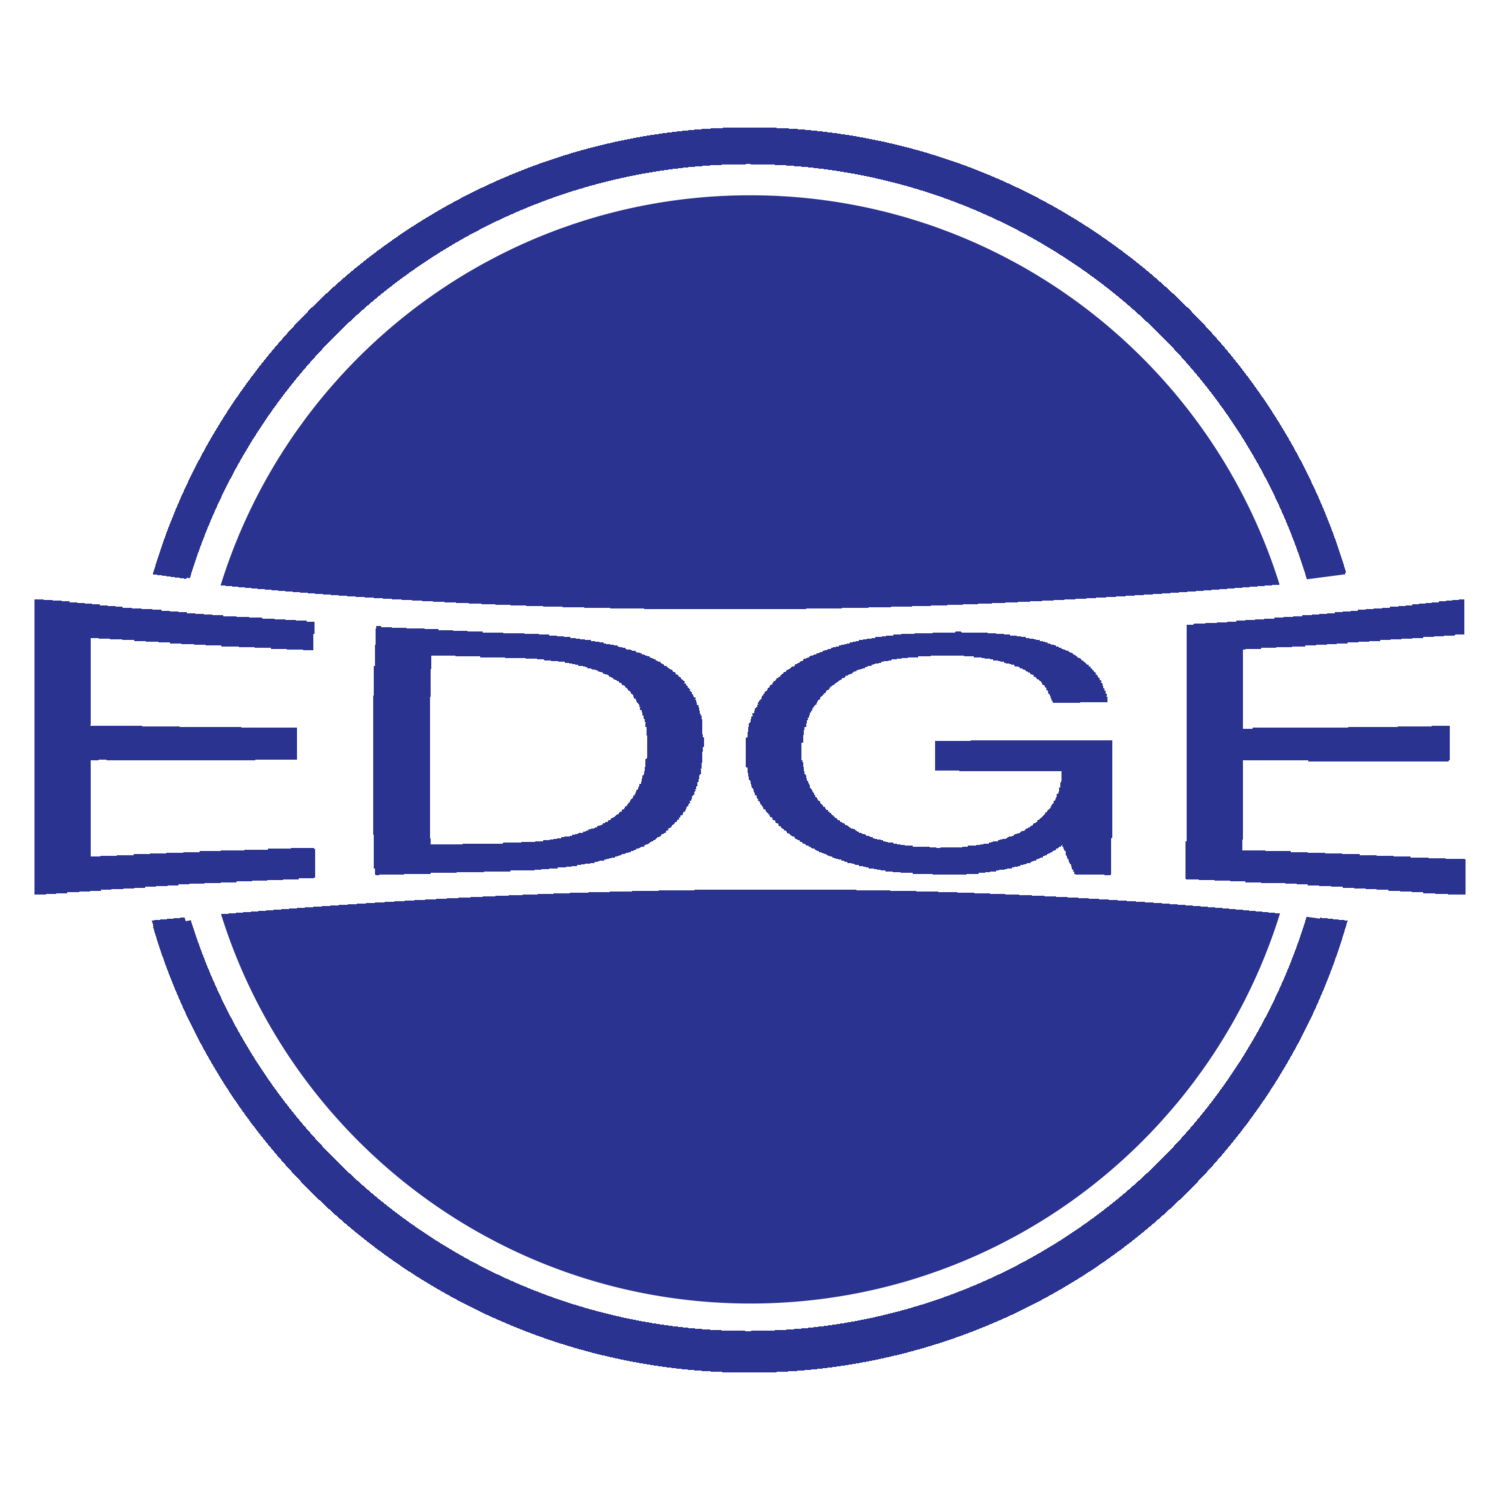 Edge Ministries